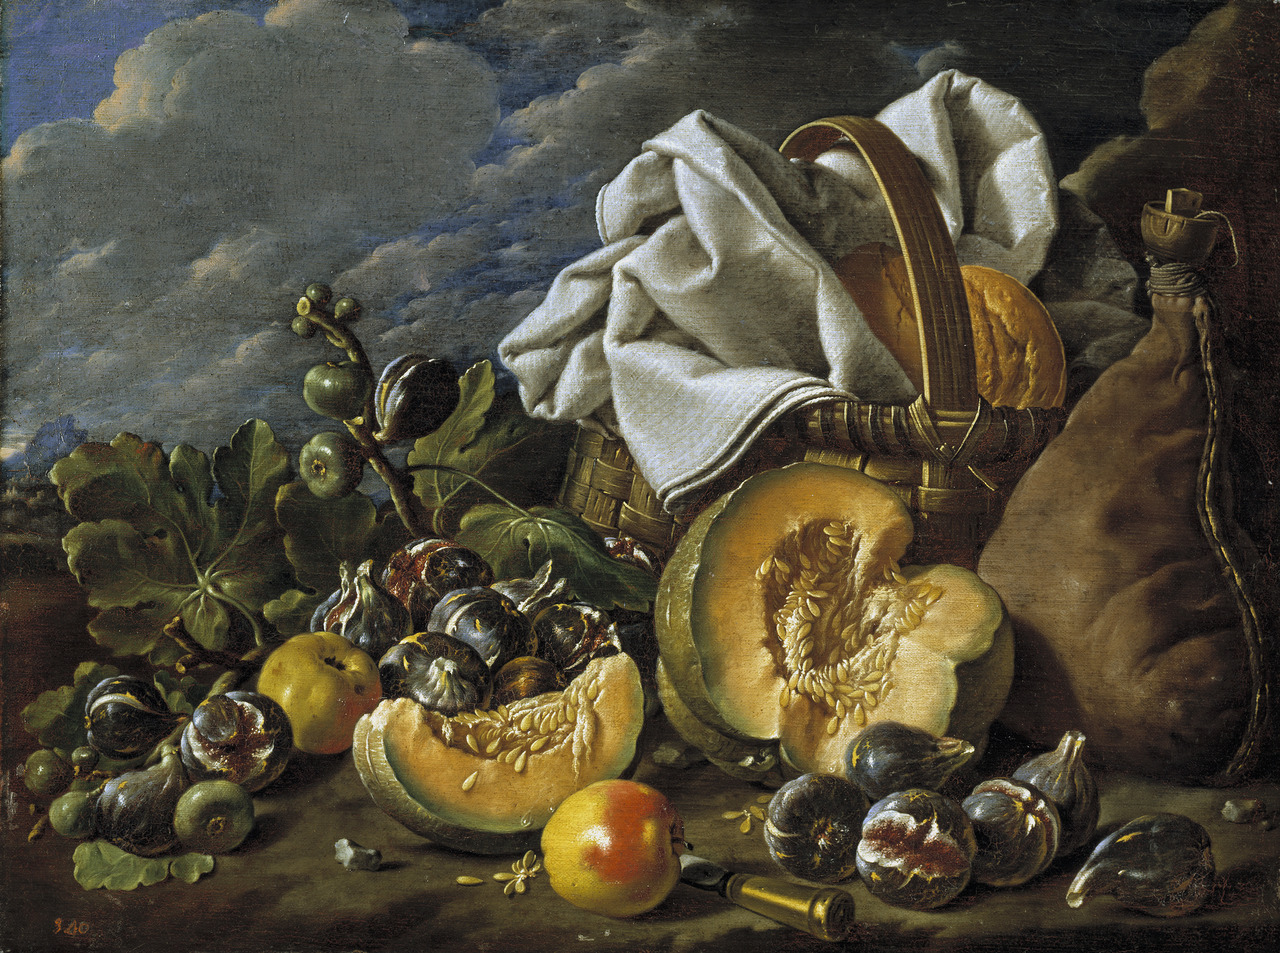 Luis Egidio Melendez, Still-Life: squash, figs, wine, and basket boot, late 18th century, Museo Nacional del Prado, Madrid